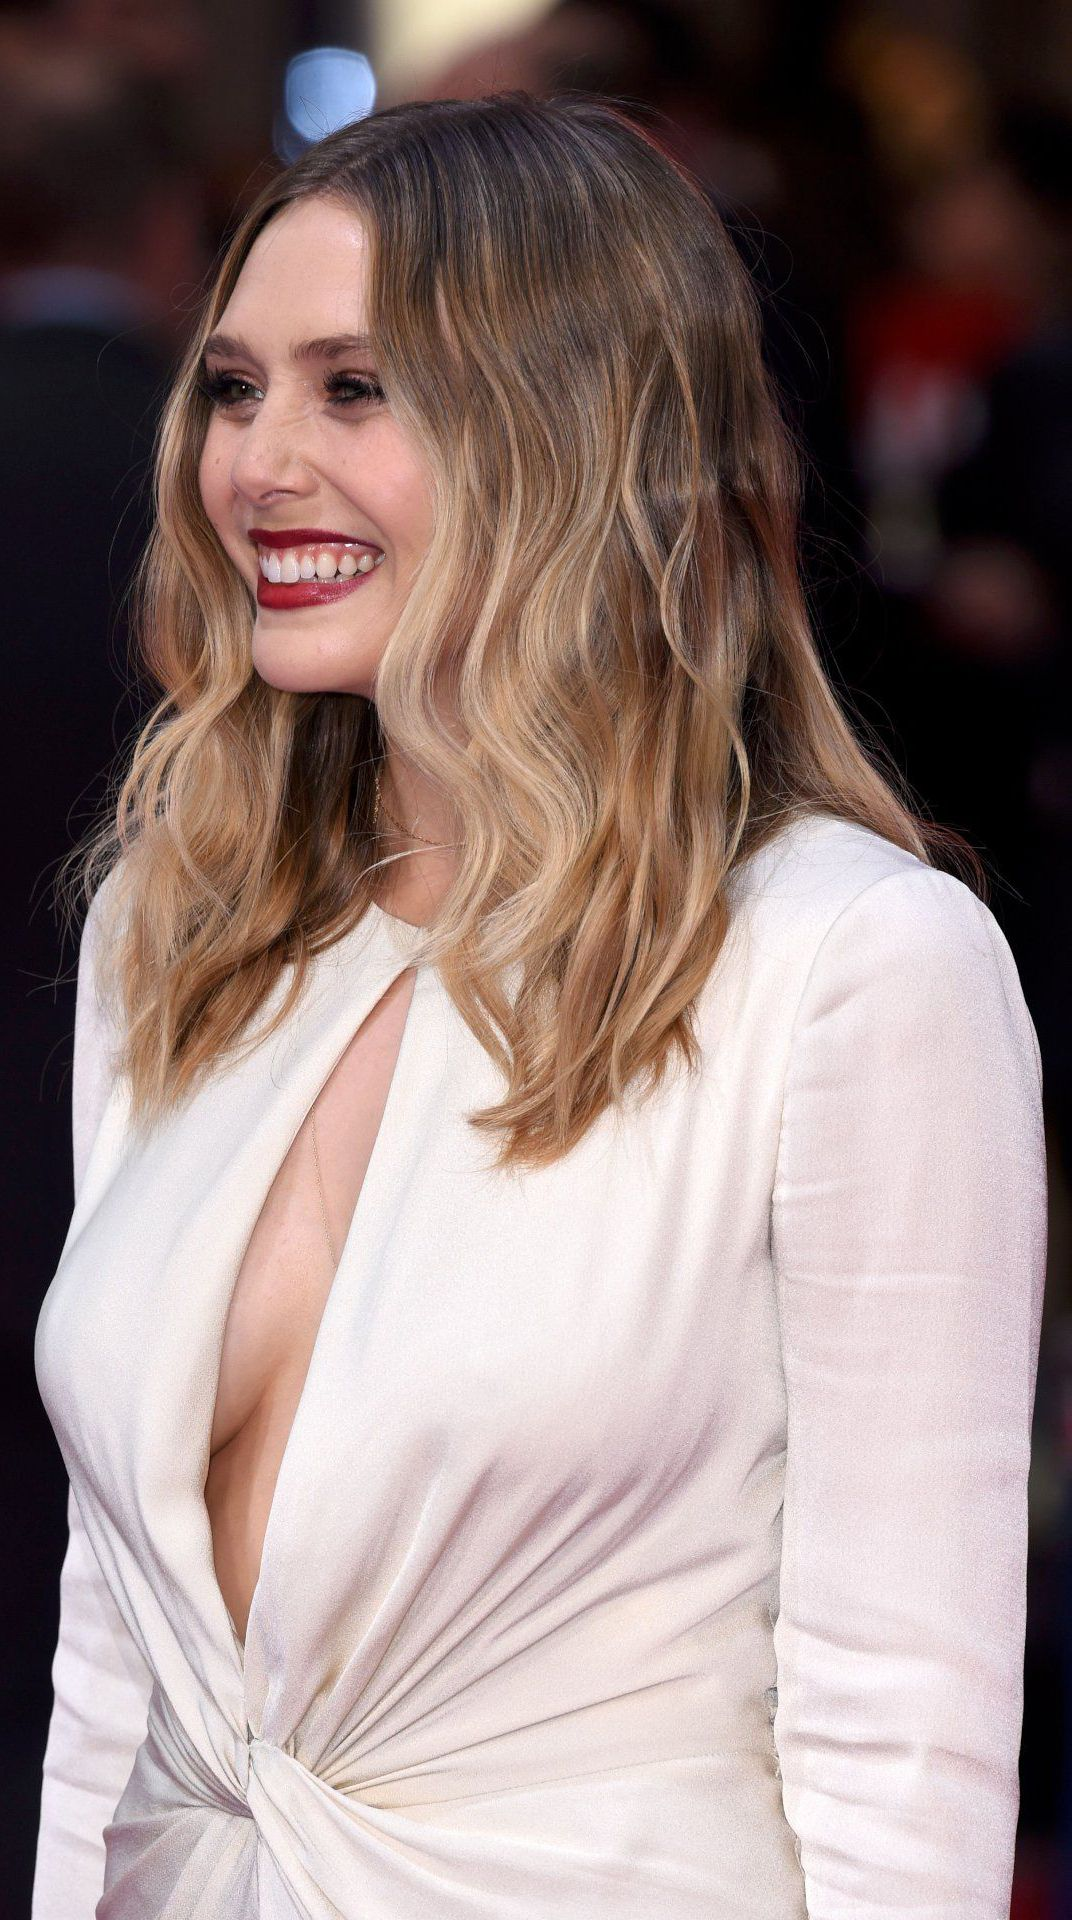 Hollywood most sexiest actress list